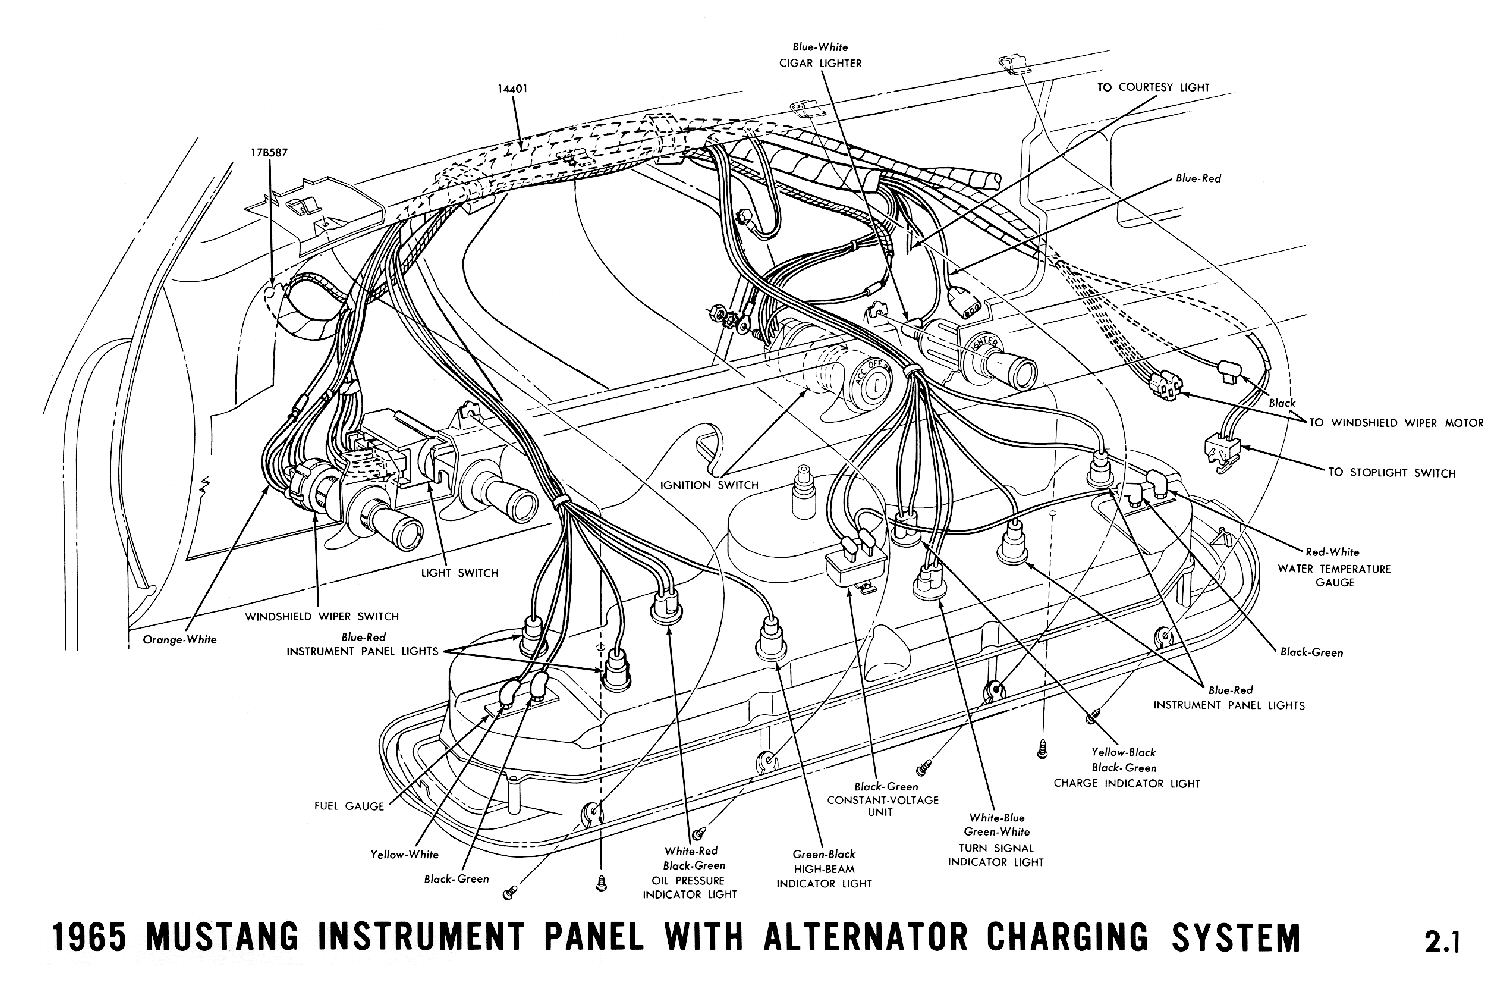 1965a 1965 mustang wiring diagrams average joe restoration best wiring harness for 1967 mustang at soozxer.org